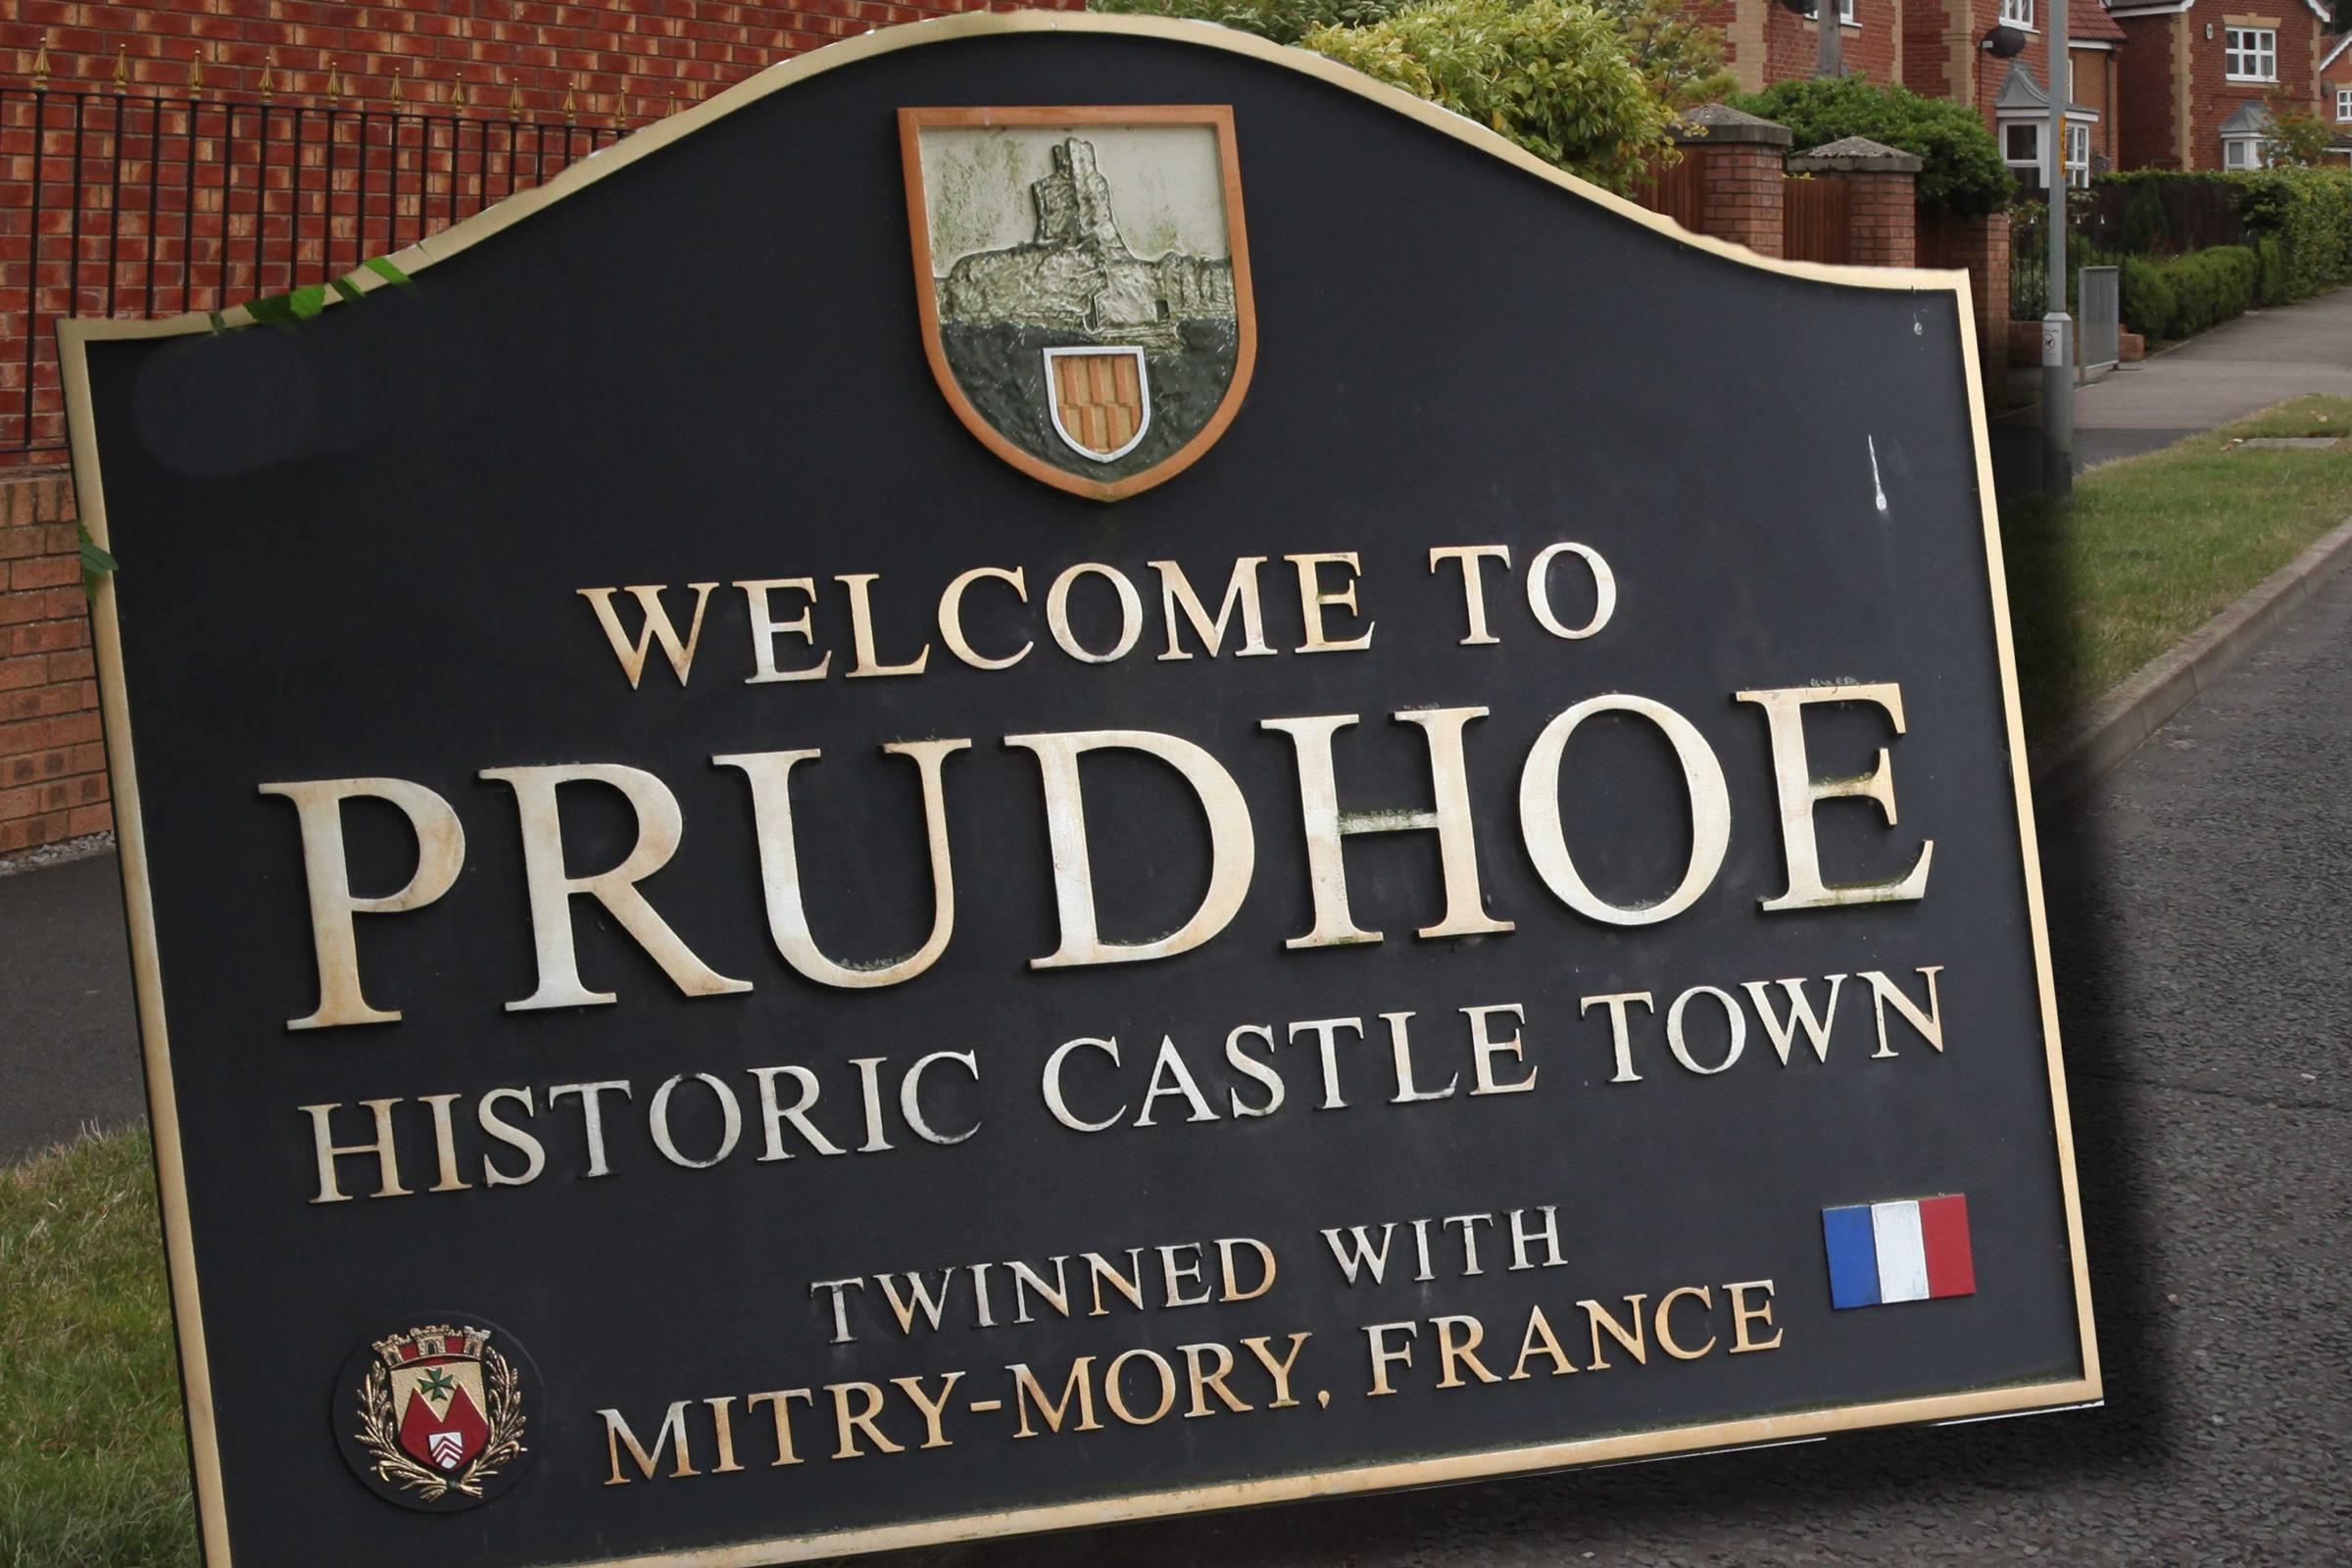 Prudhoe town councillors have appointed one of its members to Prudhoe Community Partnership